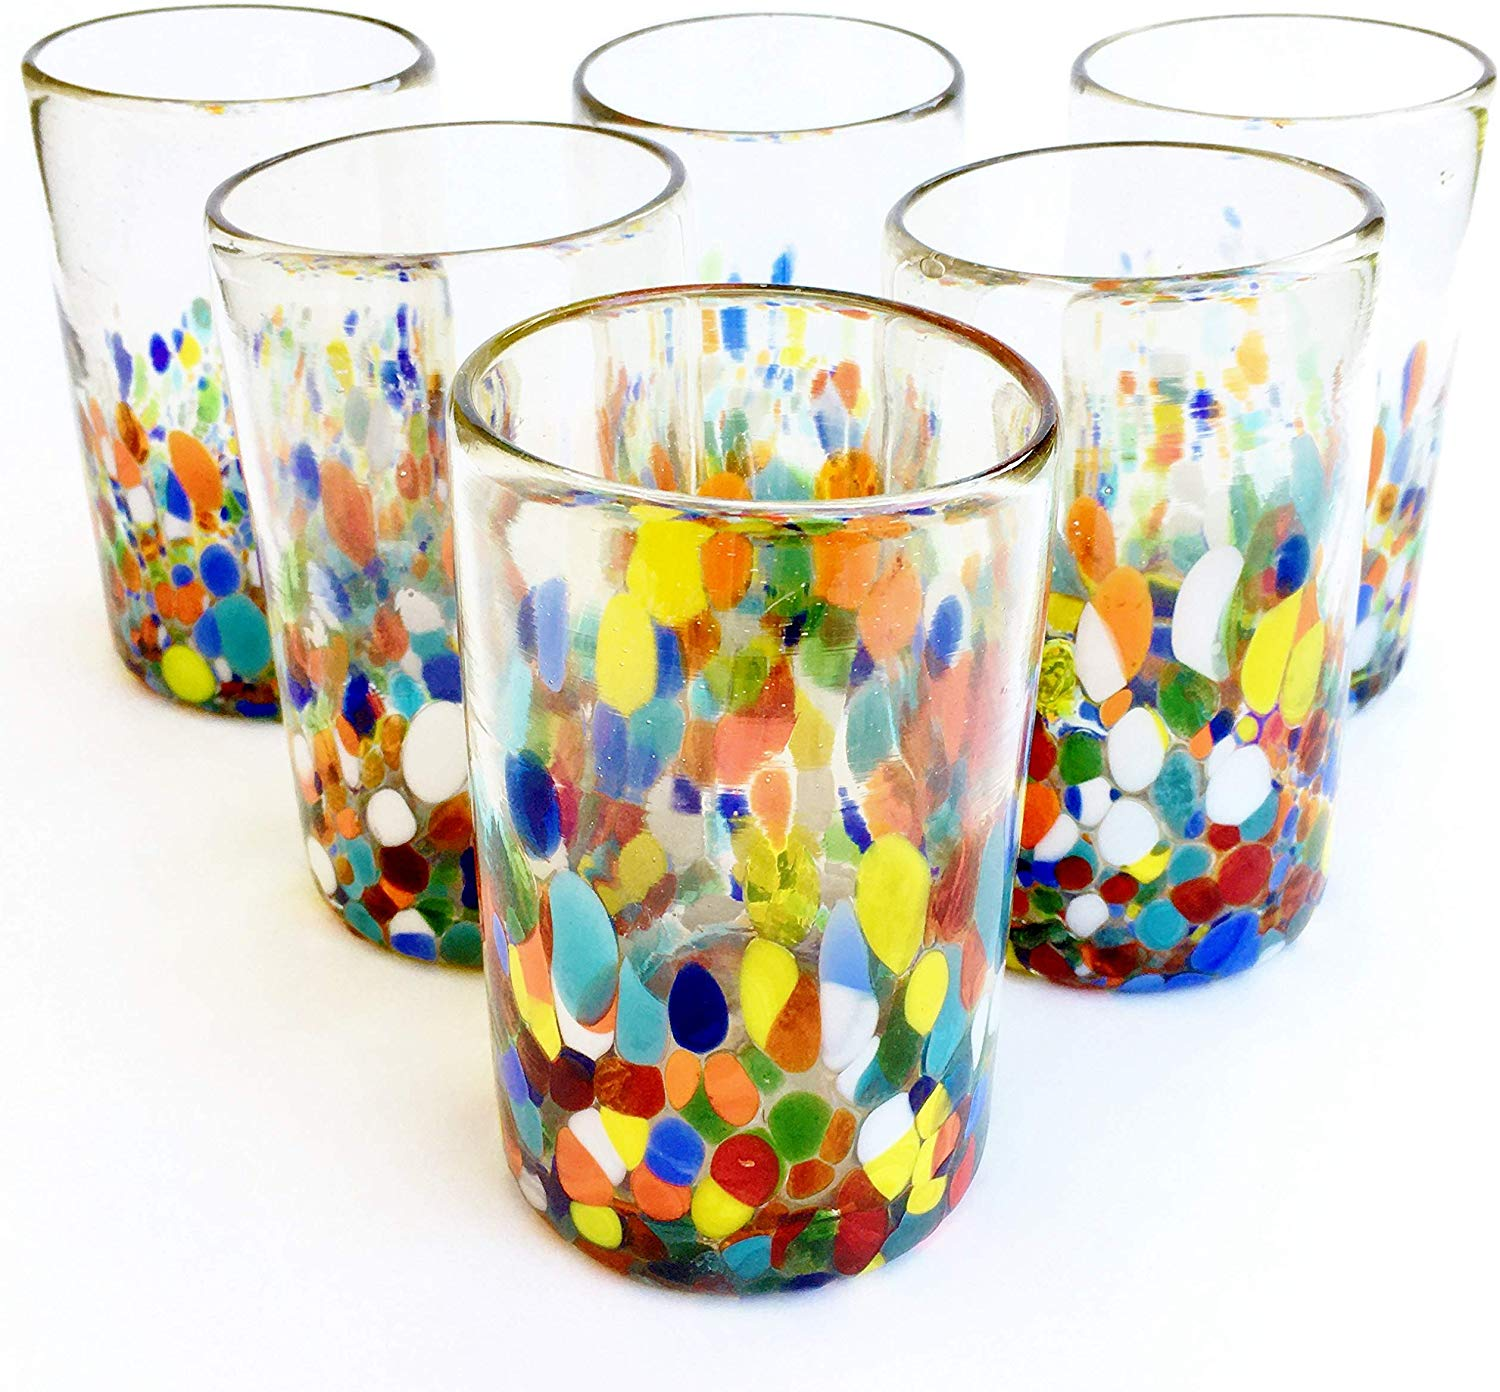 New Items / Clear & Confetti drinking glasses  / Our Clear & Confetti drinking glasses combine the best of two worlds: clear, thick, sturdy handcrafted glass on top, meets the colorful, festive, confetti bottom! These glasses will sure be a standout in any table setting or as a fabulous gift for your loved ones. Crafted one by one by skilled artisans in Tonala, Mexico, each glass is different from the next making them unique works of art. You'll be amazed at how they make having a simple glass of water a happier experience. Each glass holds approximately 14 oz of liquid and stands a bit over 5